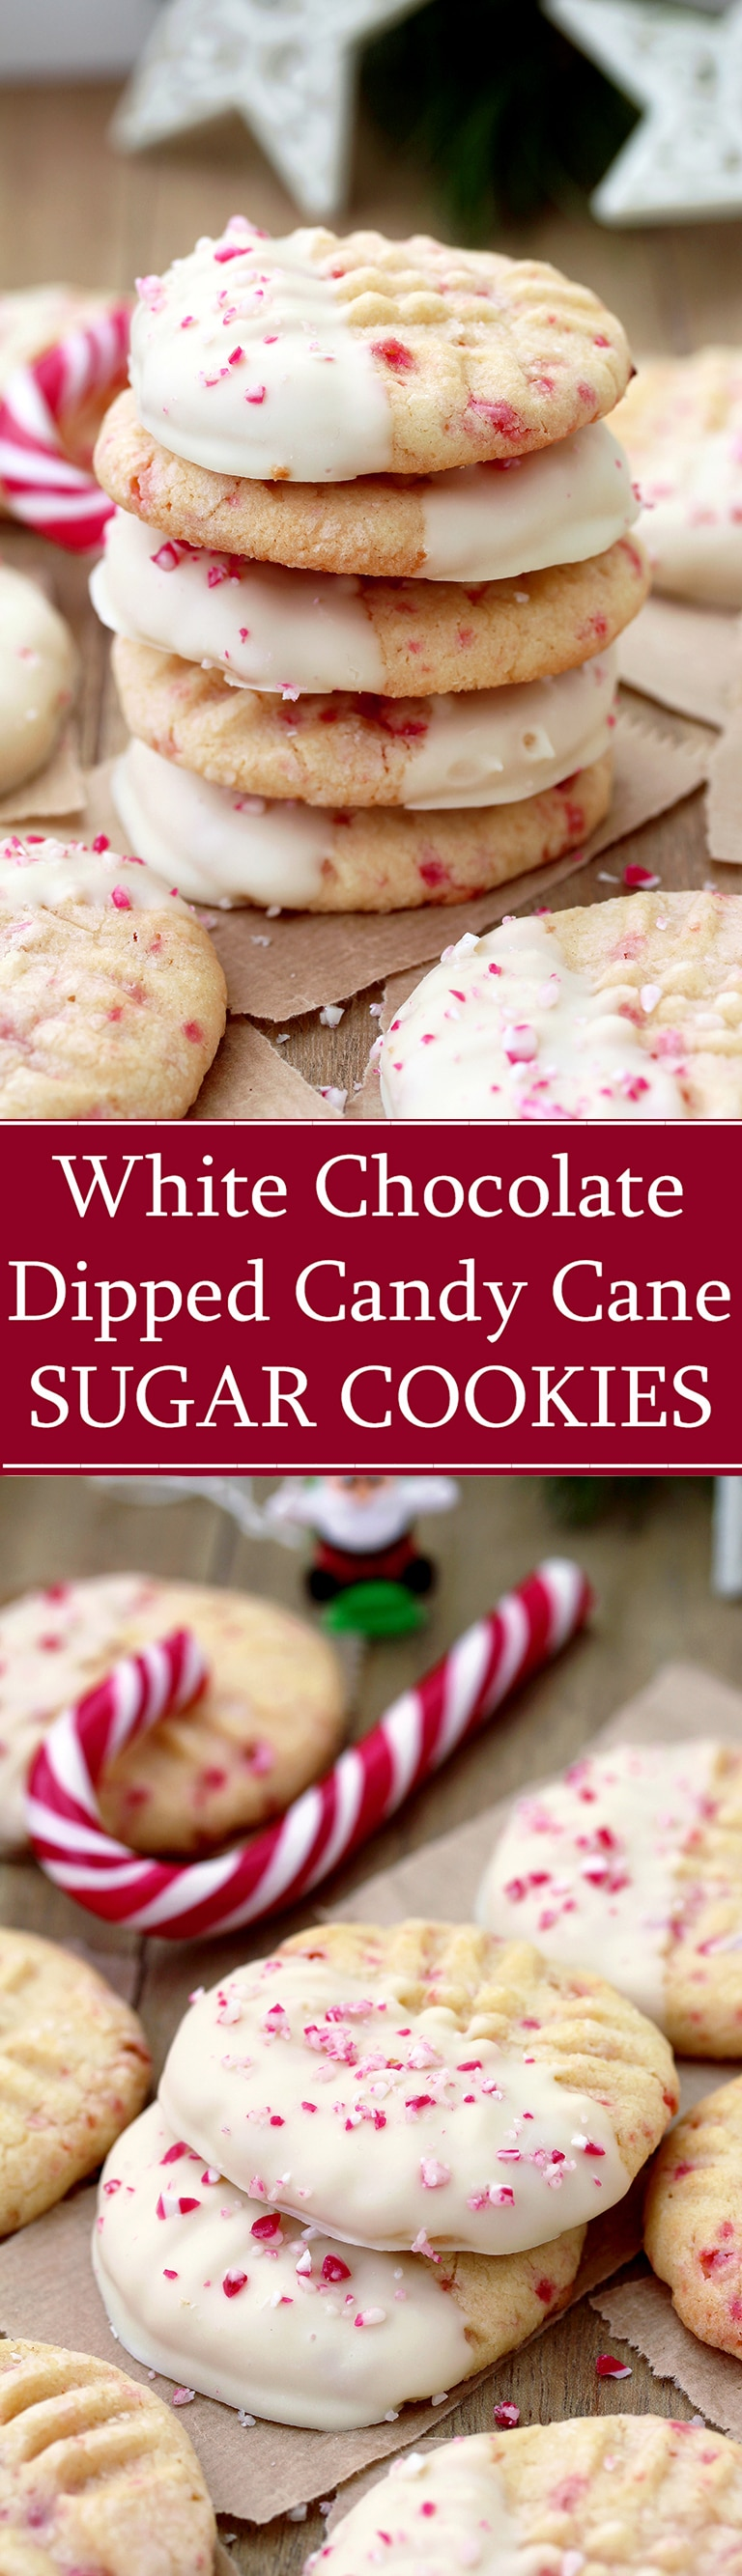 White Chocolate Dipped Candy Cane Sugar Cookies – delicious sugar cookies, just perfect for Christmas. They are easy to make and melt in your mouth